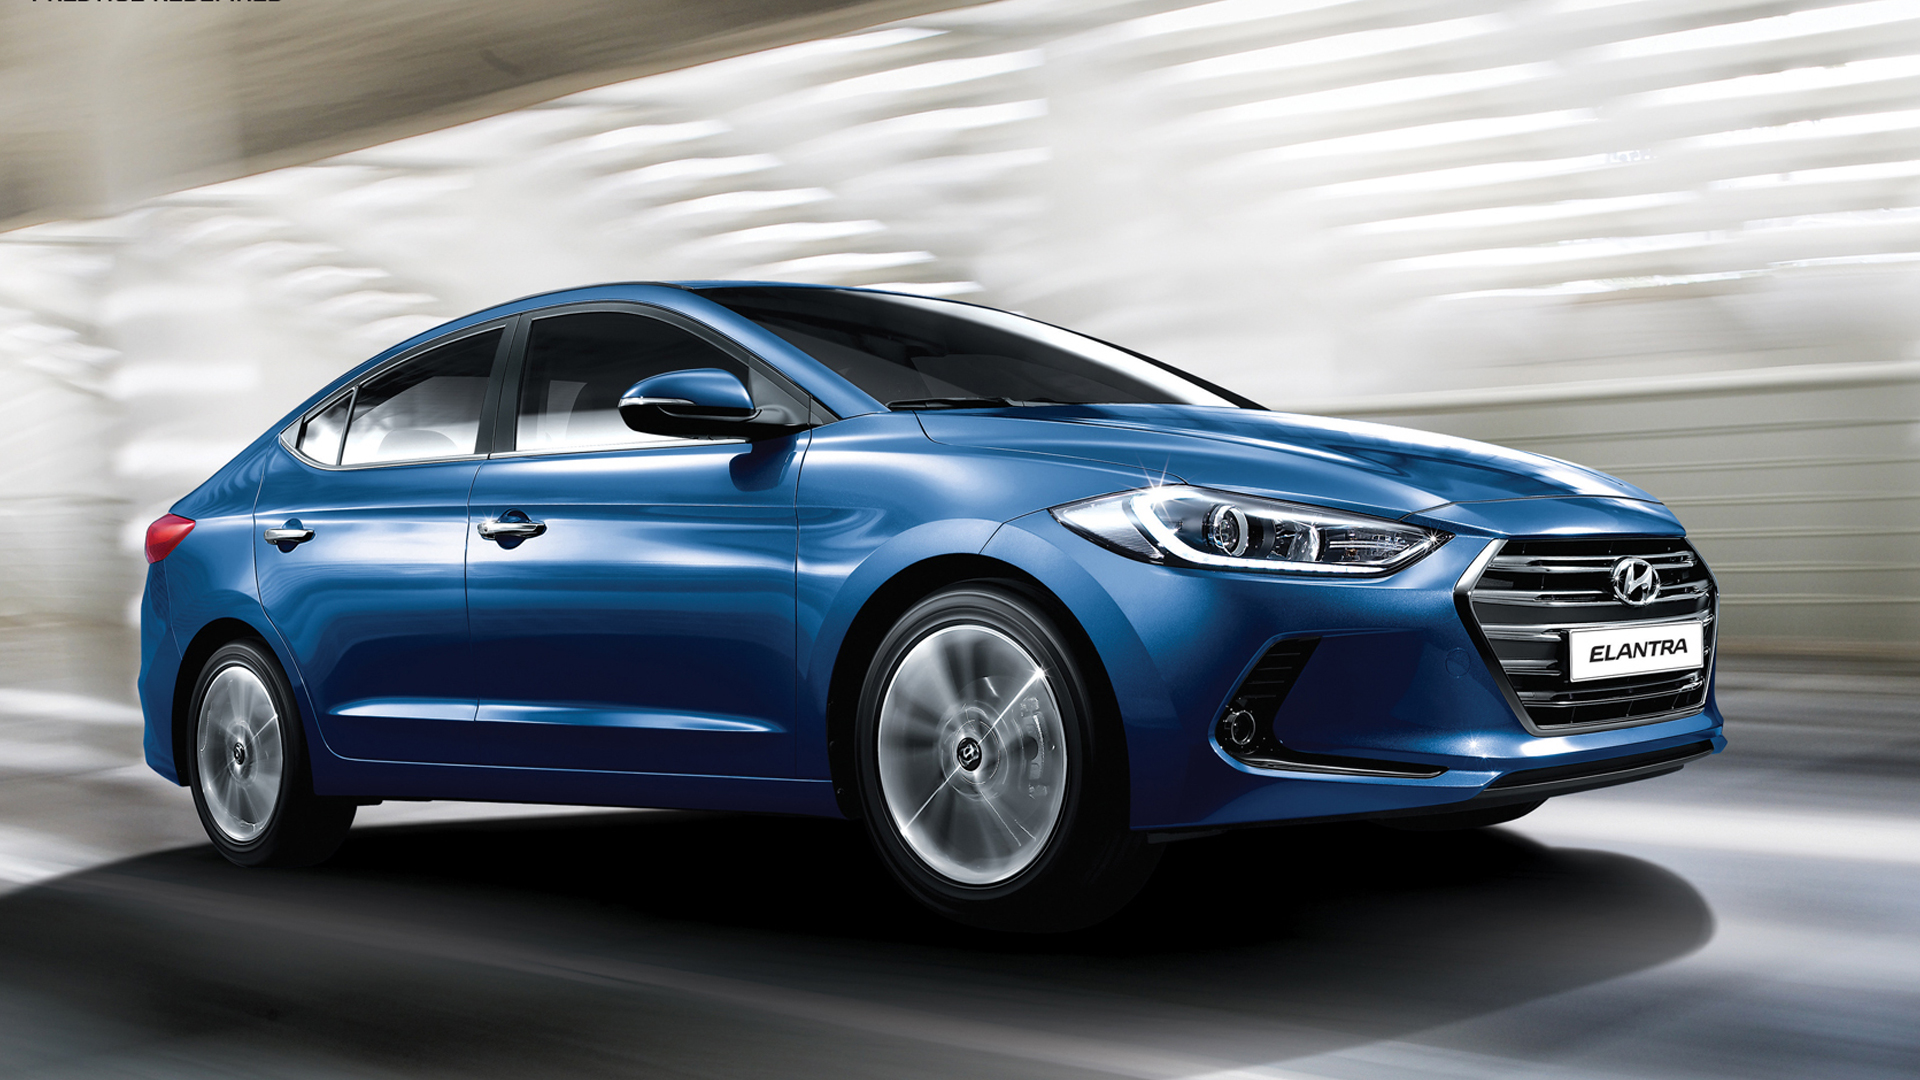 hyundai elantra 2016 price mileage reviews specification gallery overdrive. Black Bedroom Furniture Sets. Home Design Ideas